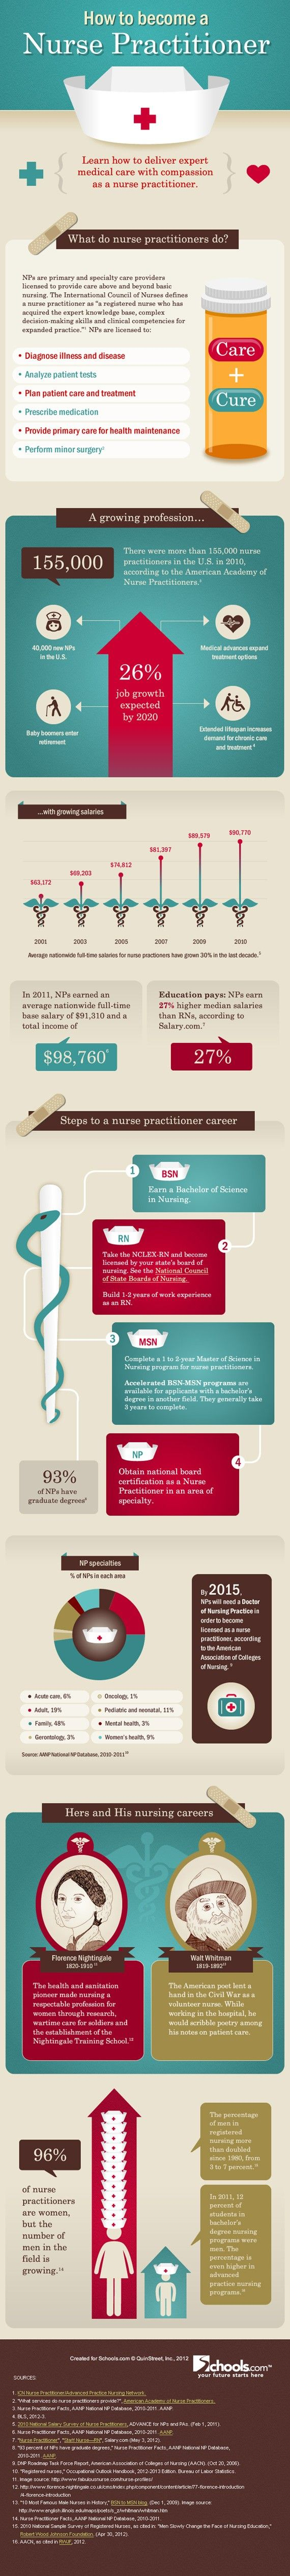 best ideas about becoming a nurse becoming a how to become a nurse practitioner infographic note recent changes in requirements now mean a doctorate will be necessary by 2015 for all nps to